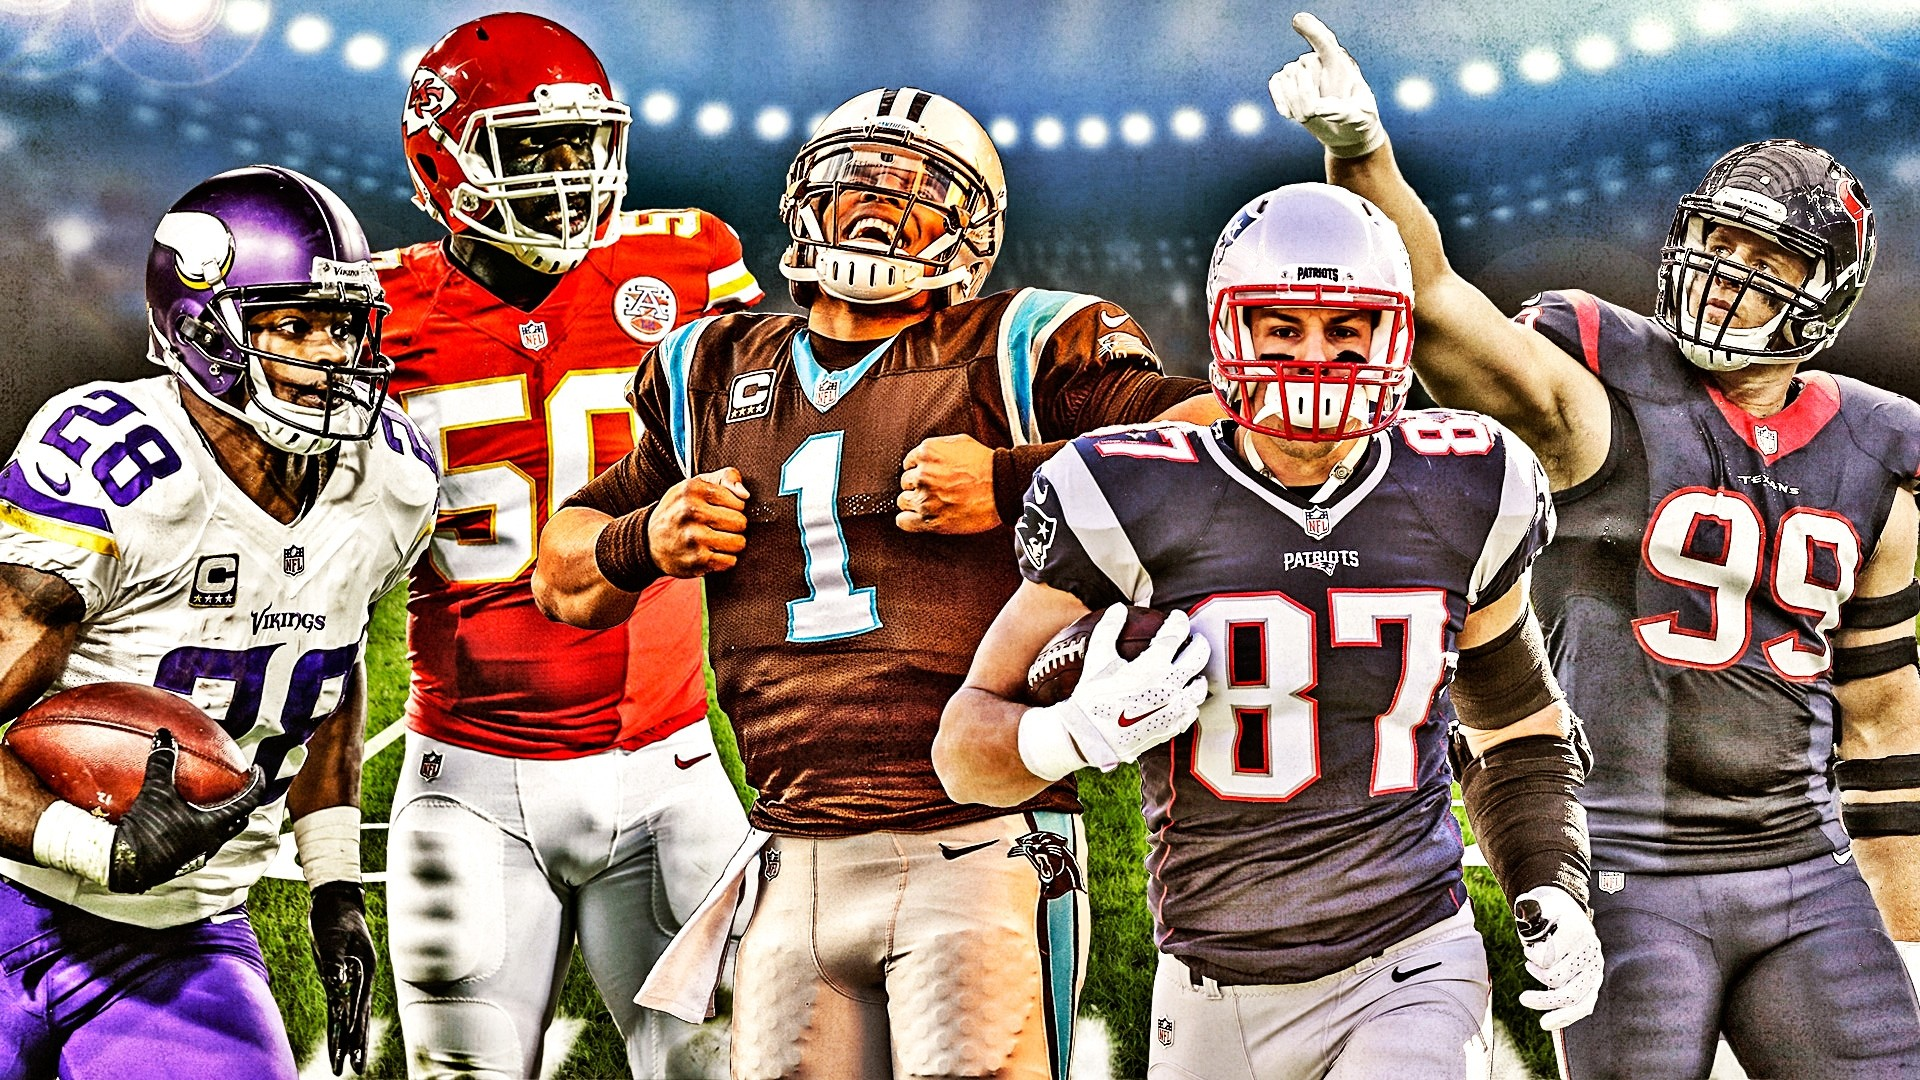 1920x1080 Sporting News' 2015 NFL All-Pro team: Coaches crown the season's best  players | Sporting News